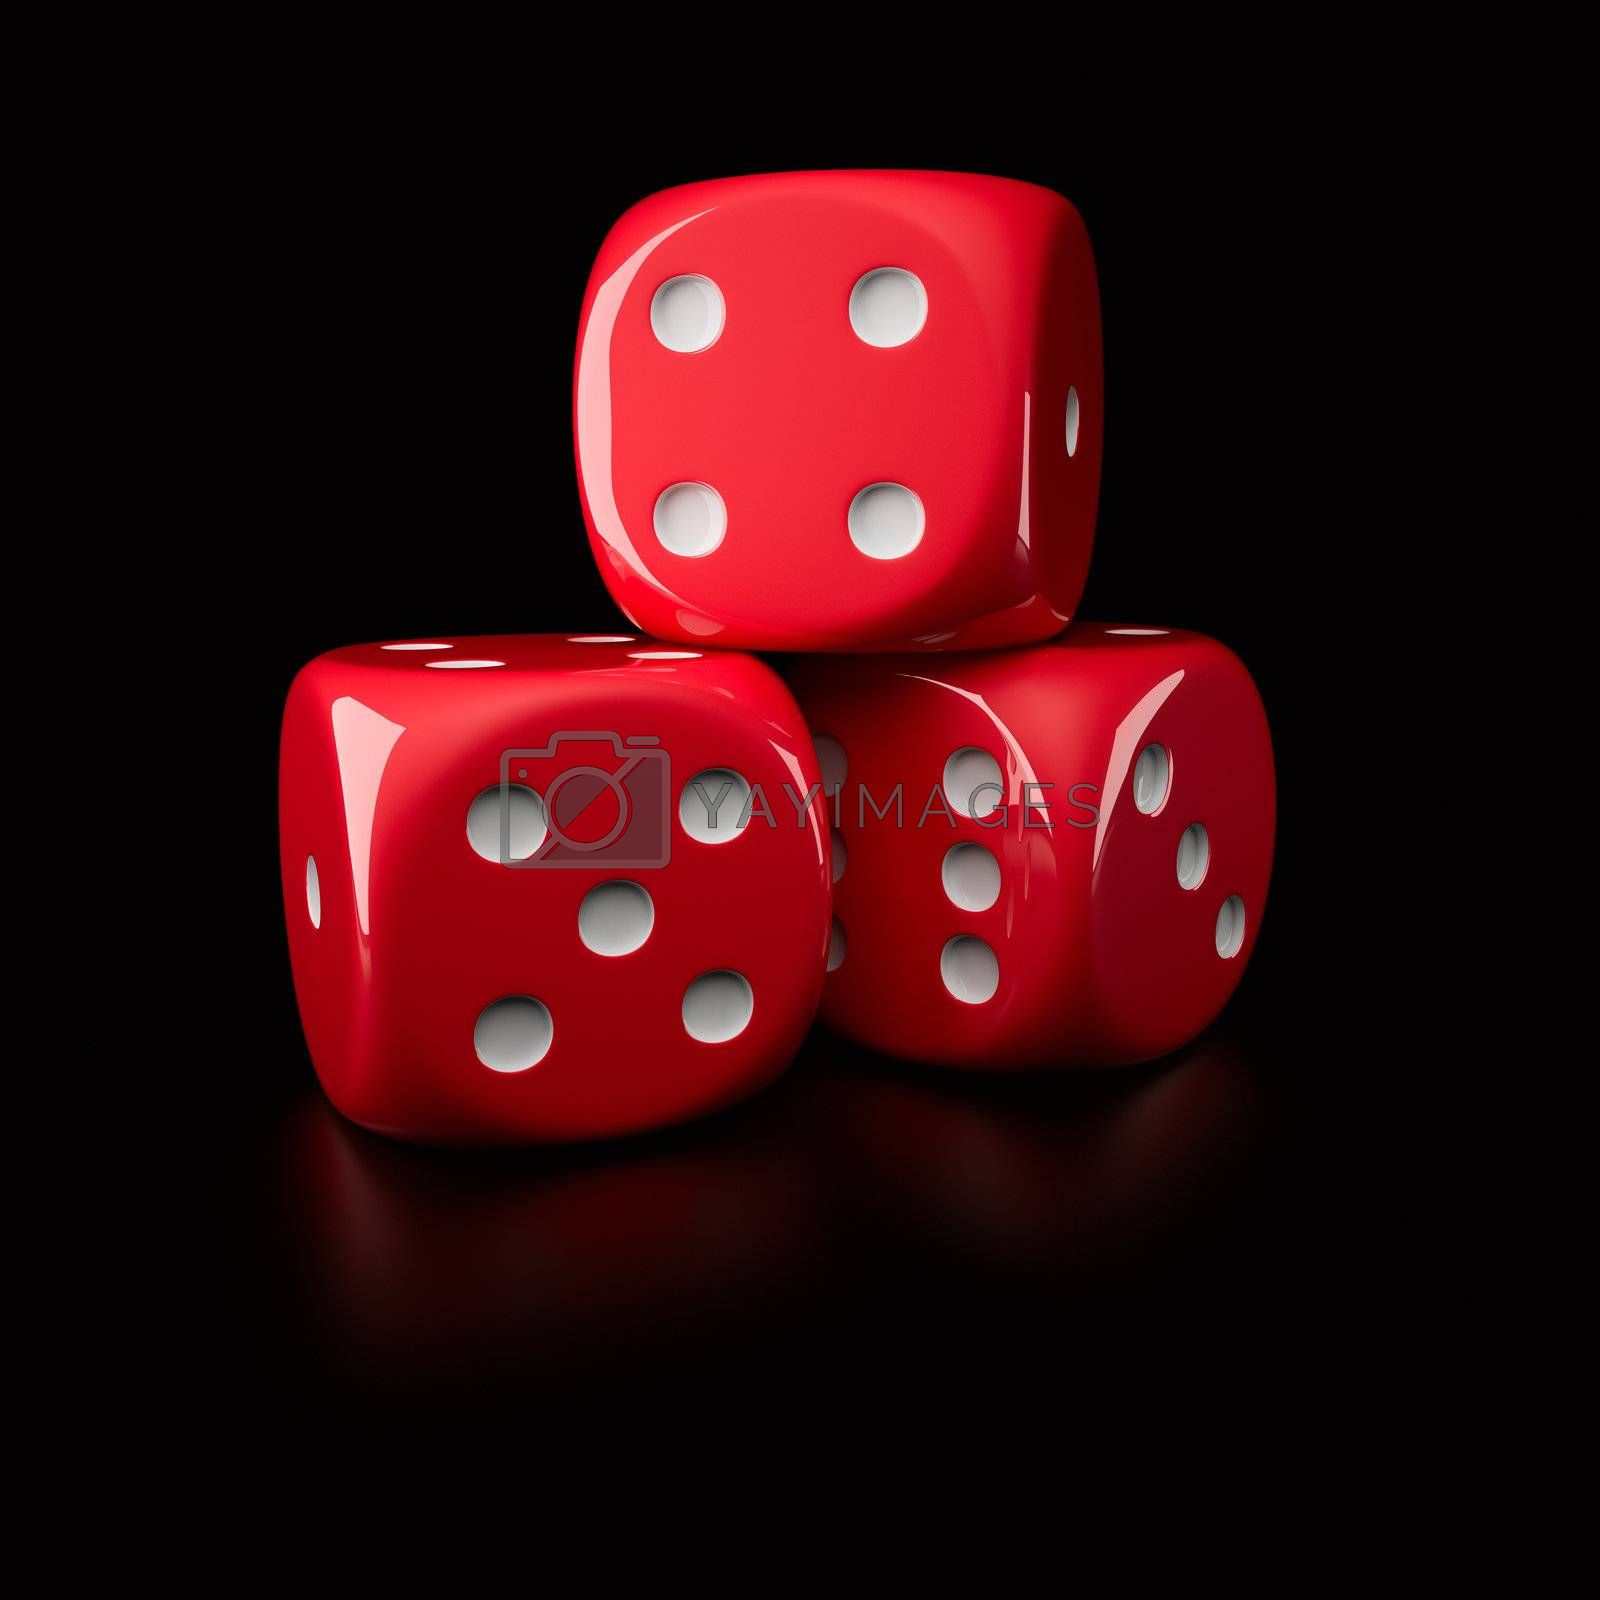 Three red dice showing different sides (on a right-handed, 6-sided die with pips)